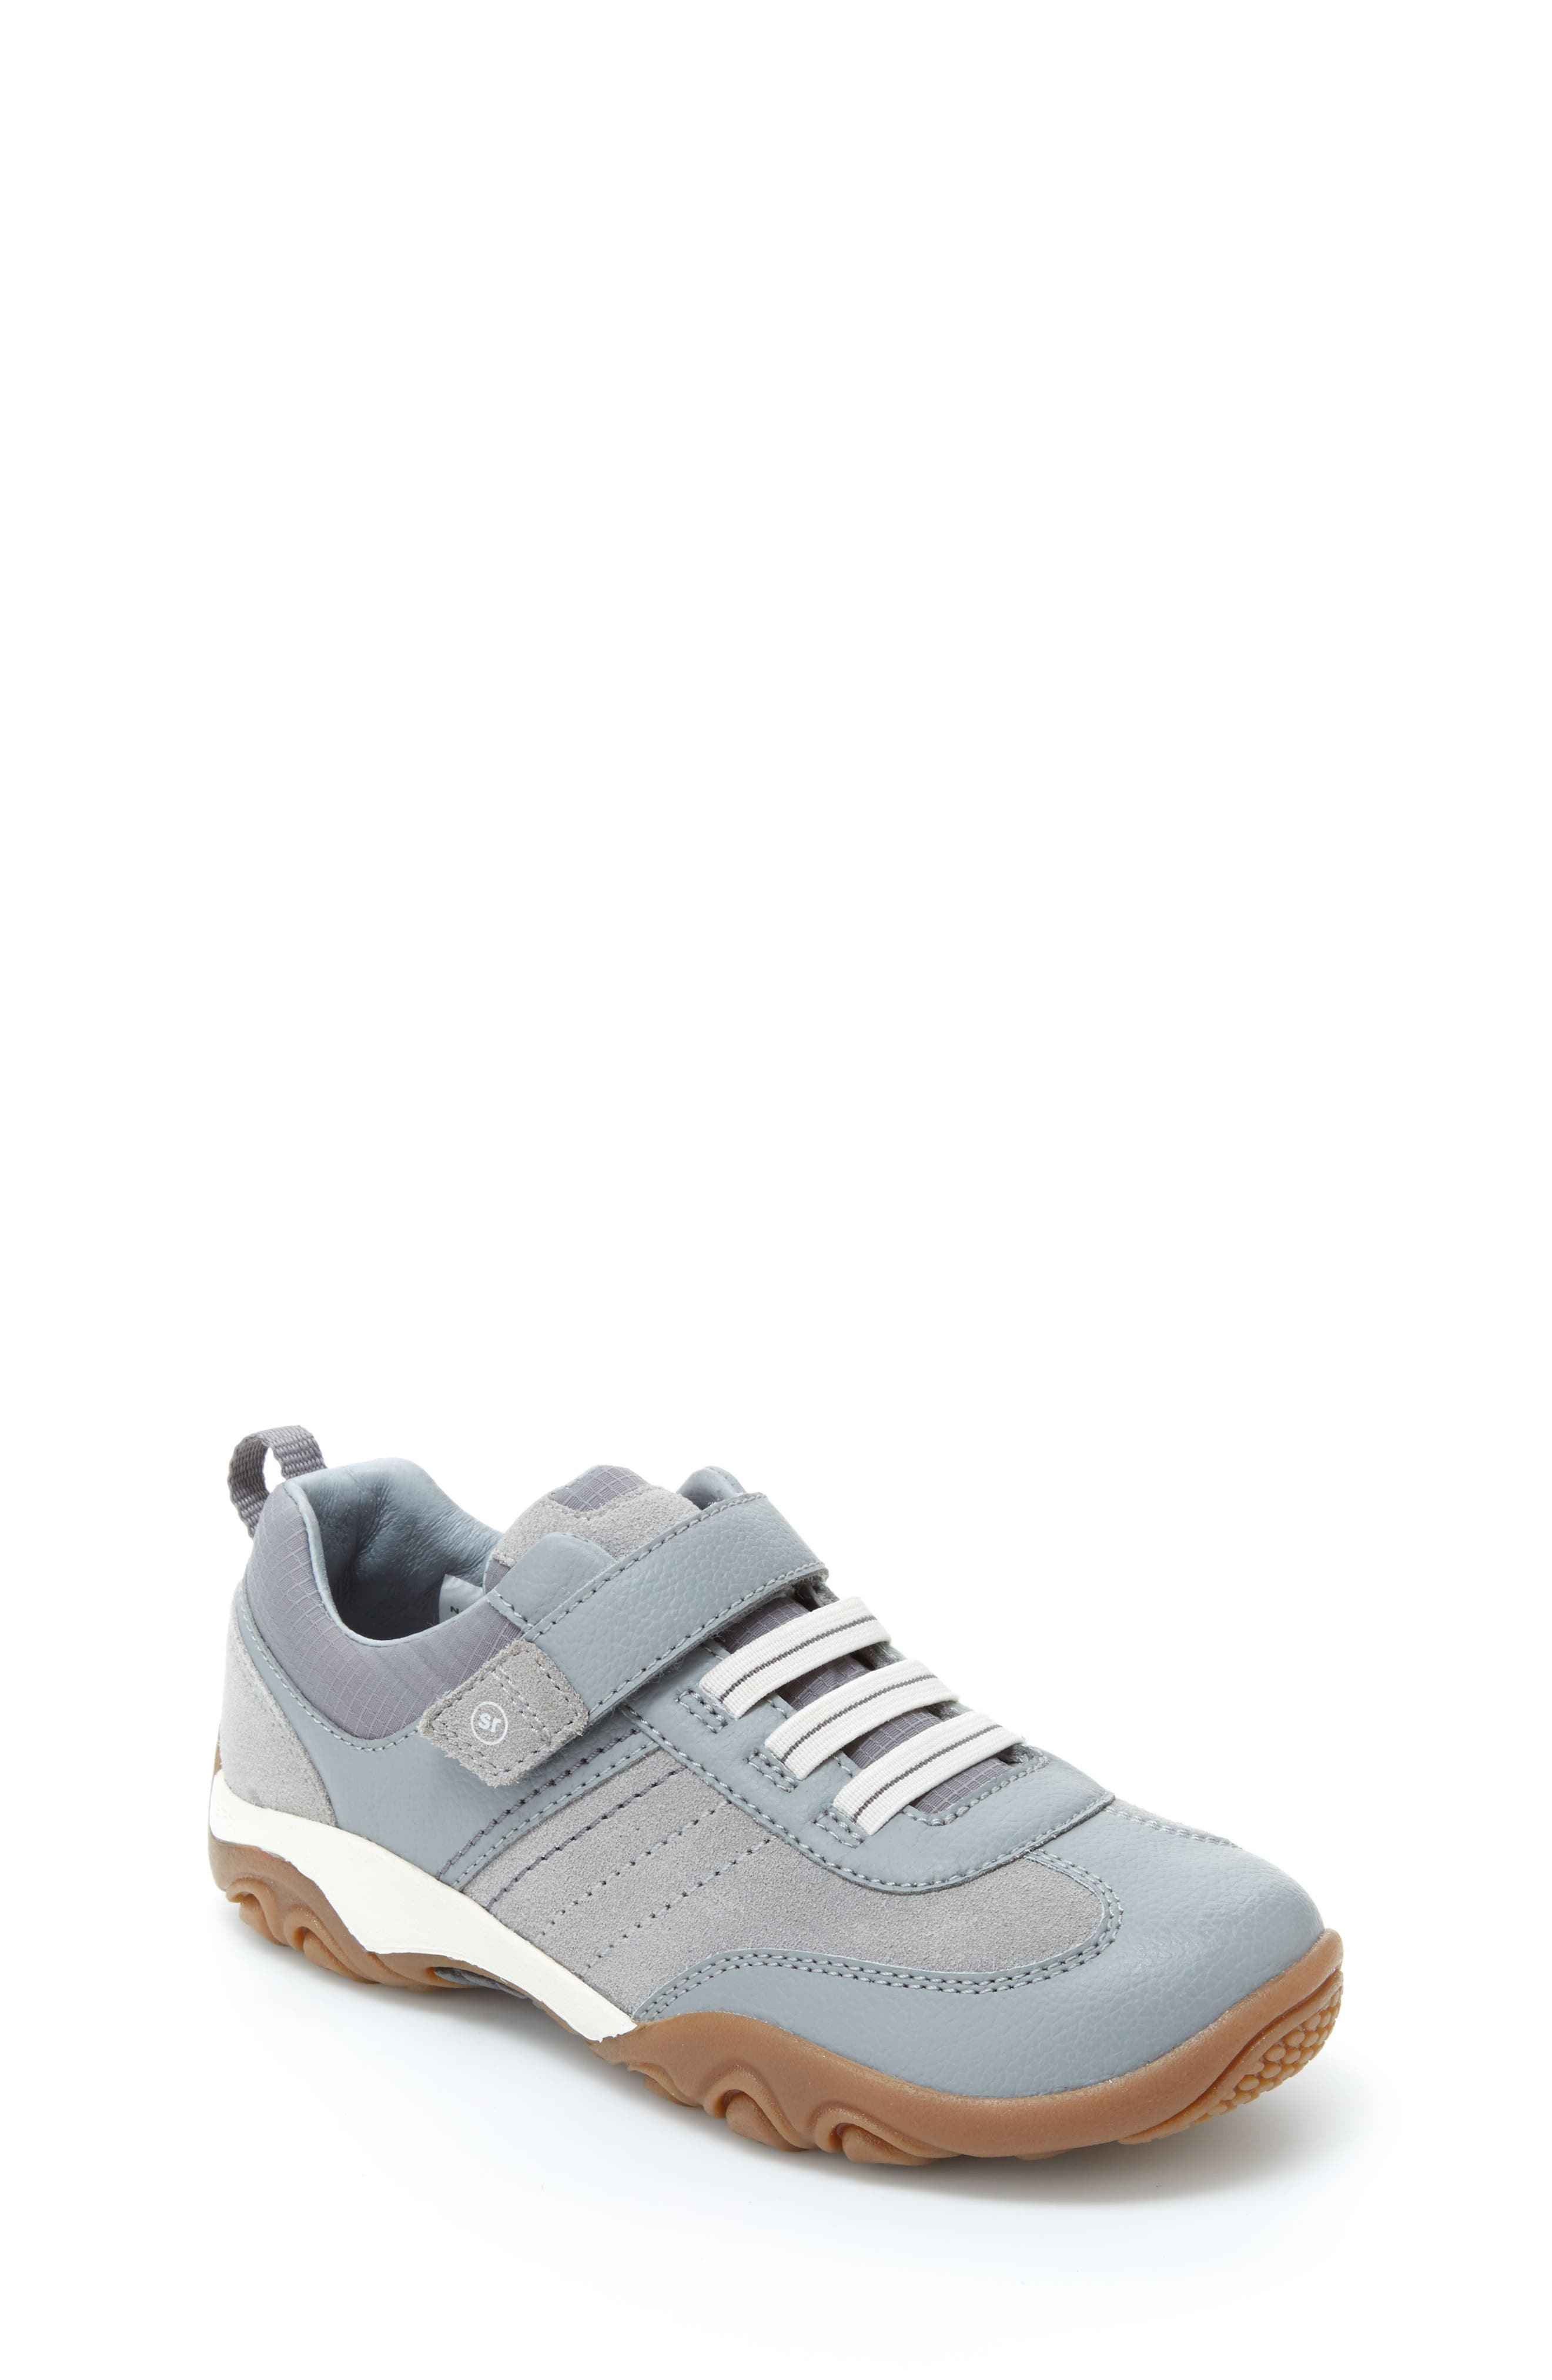 'SRT Prescott' Sneaker,                             Main thumbnail 1, color,                             GREY